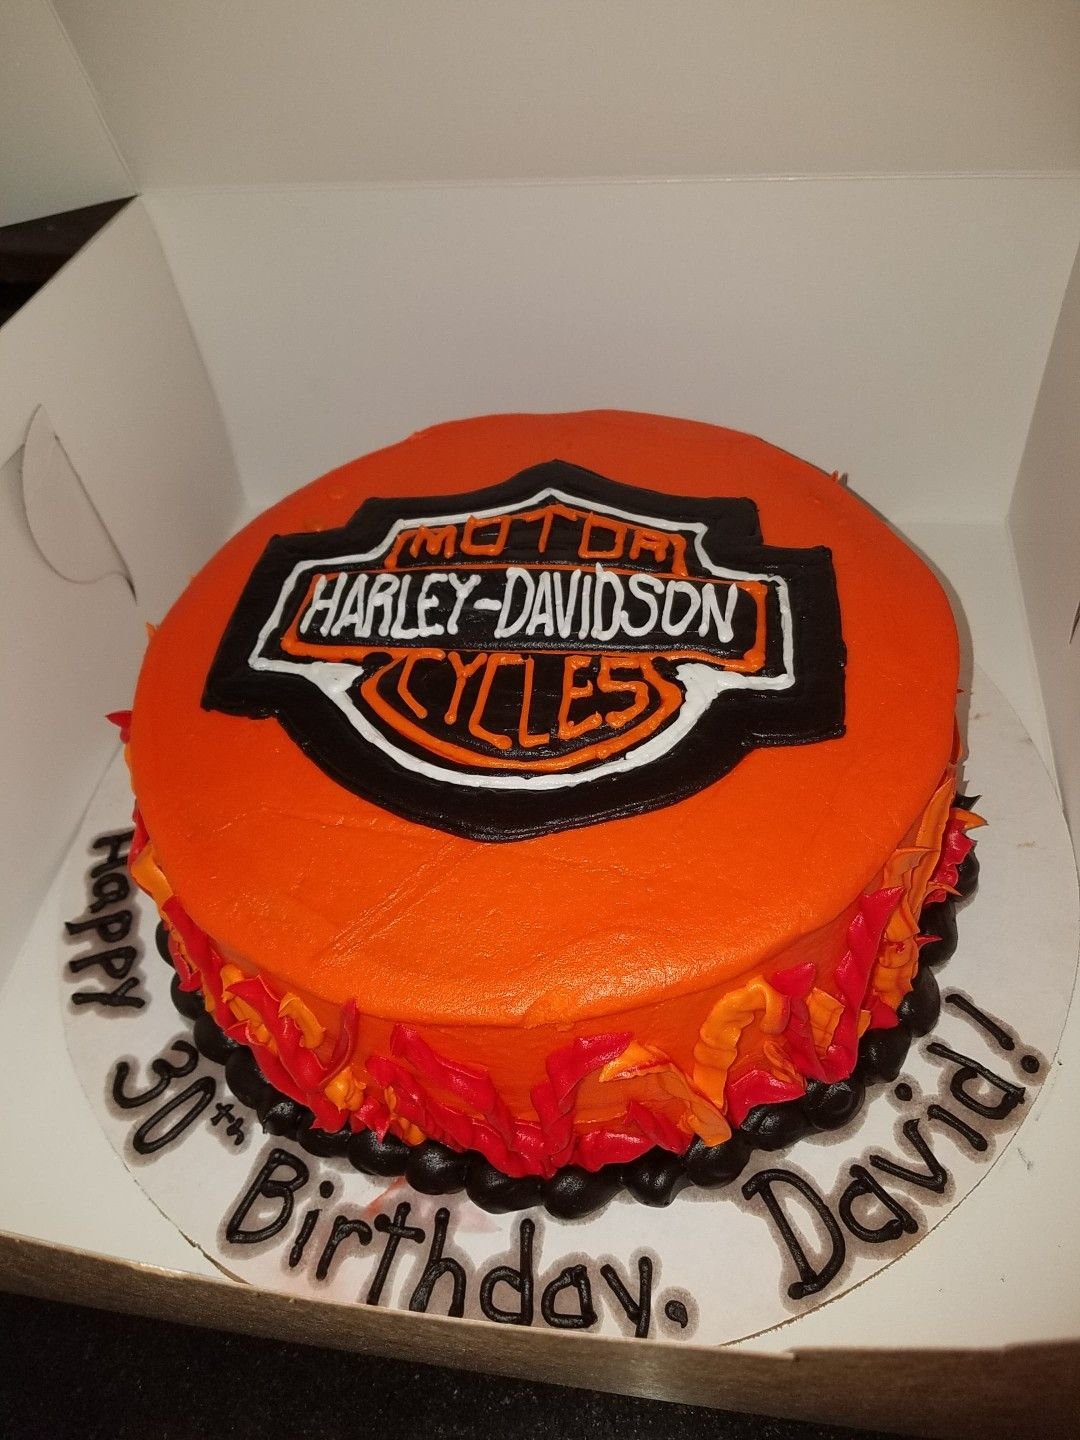 All Buttercream Harley Davidson Cake Make Sure Your Cake Board Is